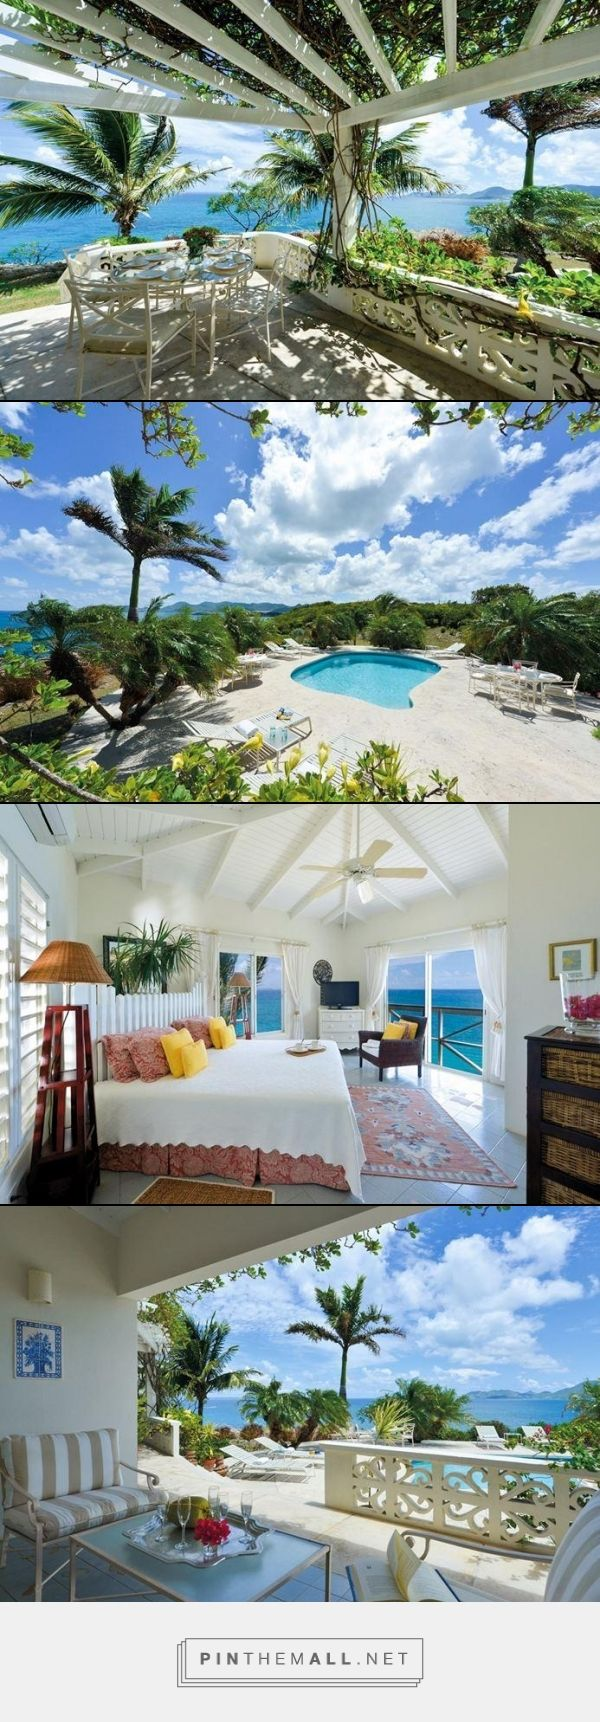 Villa Falaise Des Oiseaux- Terres Basses, St. Martin- WIMCO- 2 bed 2 bath, starting at $2,100/ week!